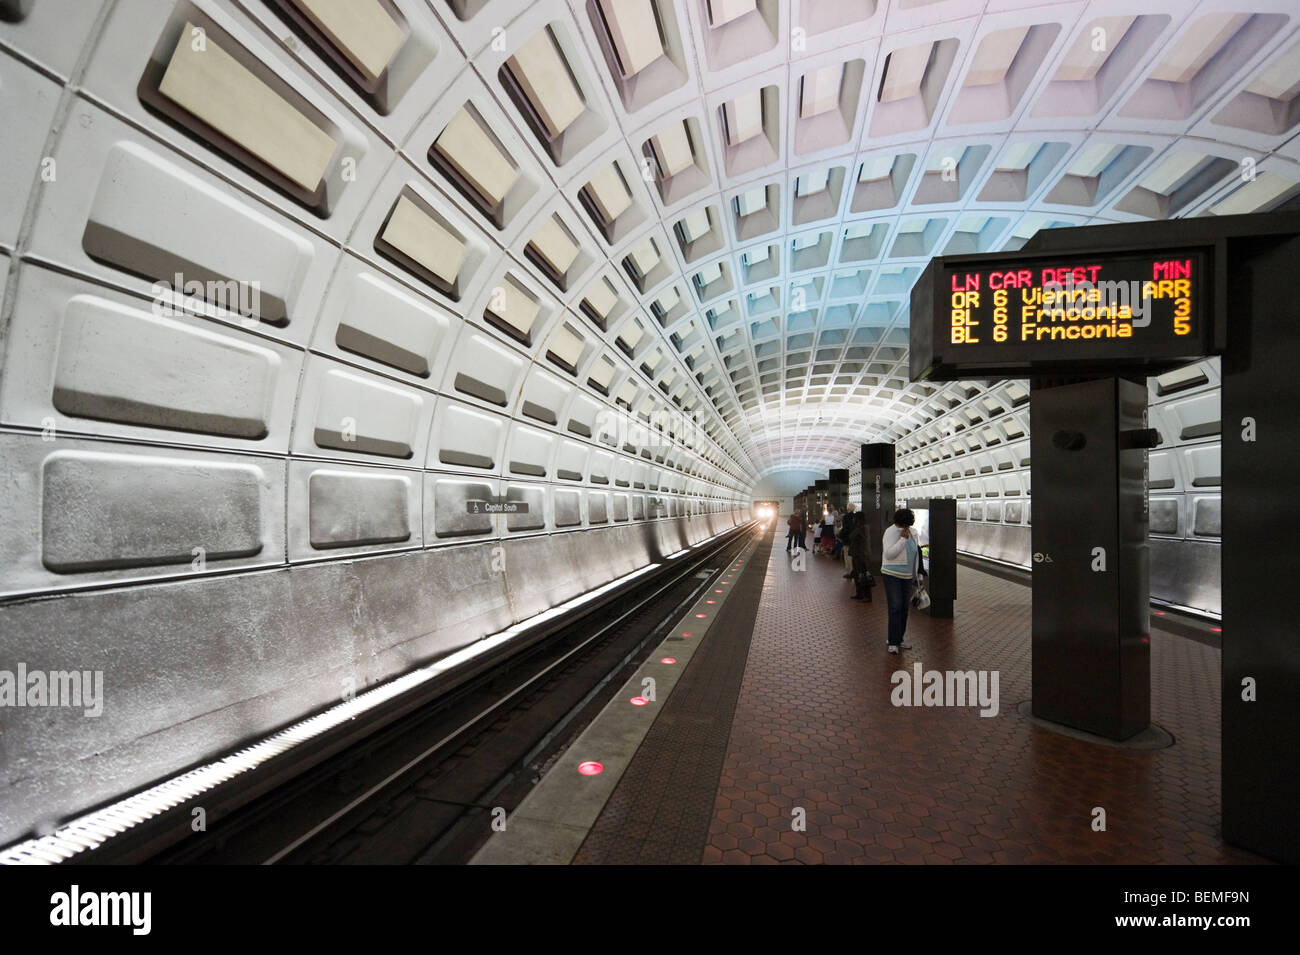 Capitol South Metro Station, Washington DC, USA - Stock Image